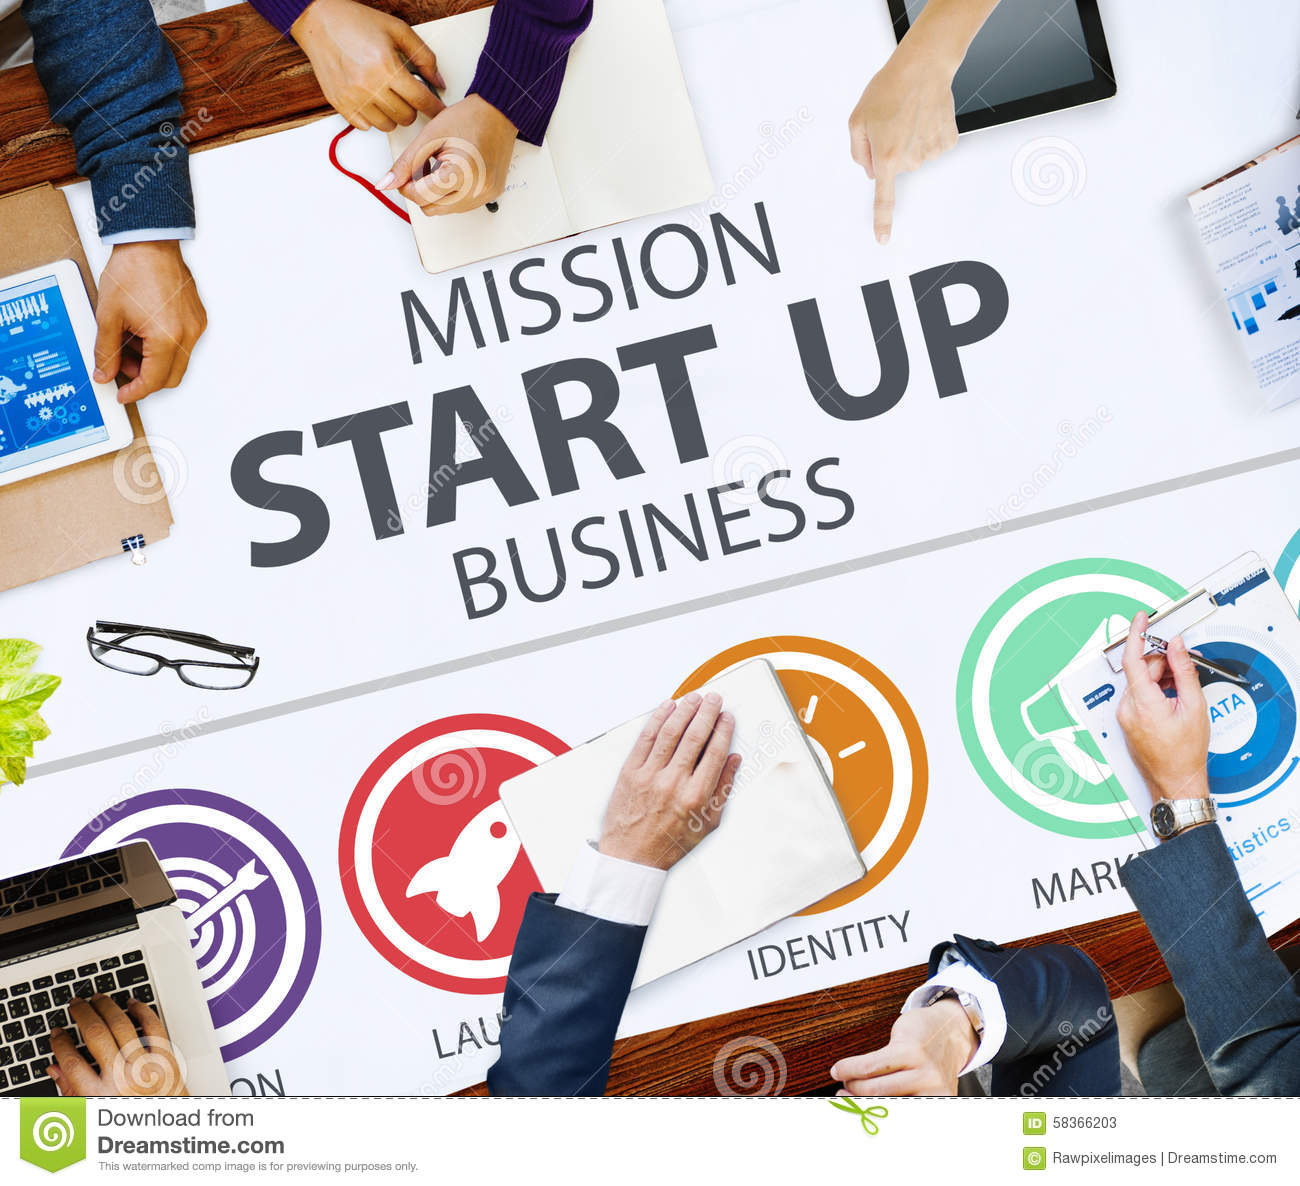 how to start up an it business